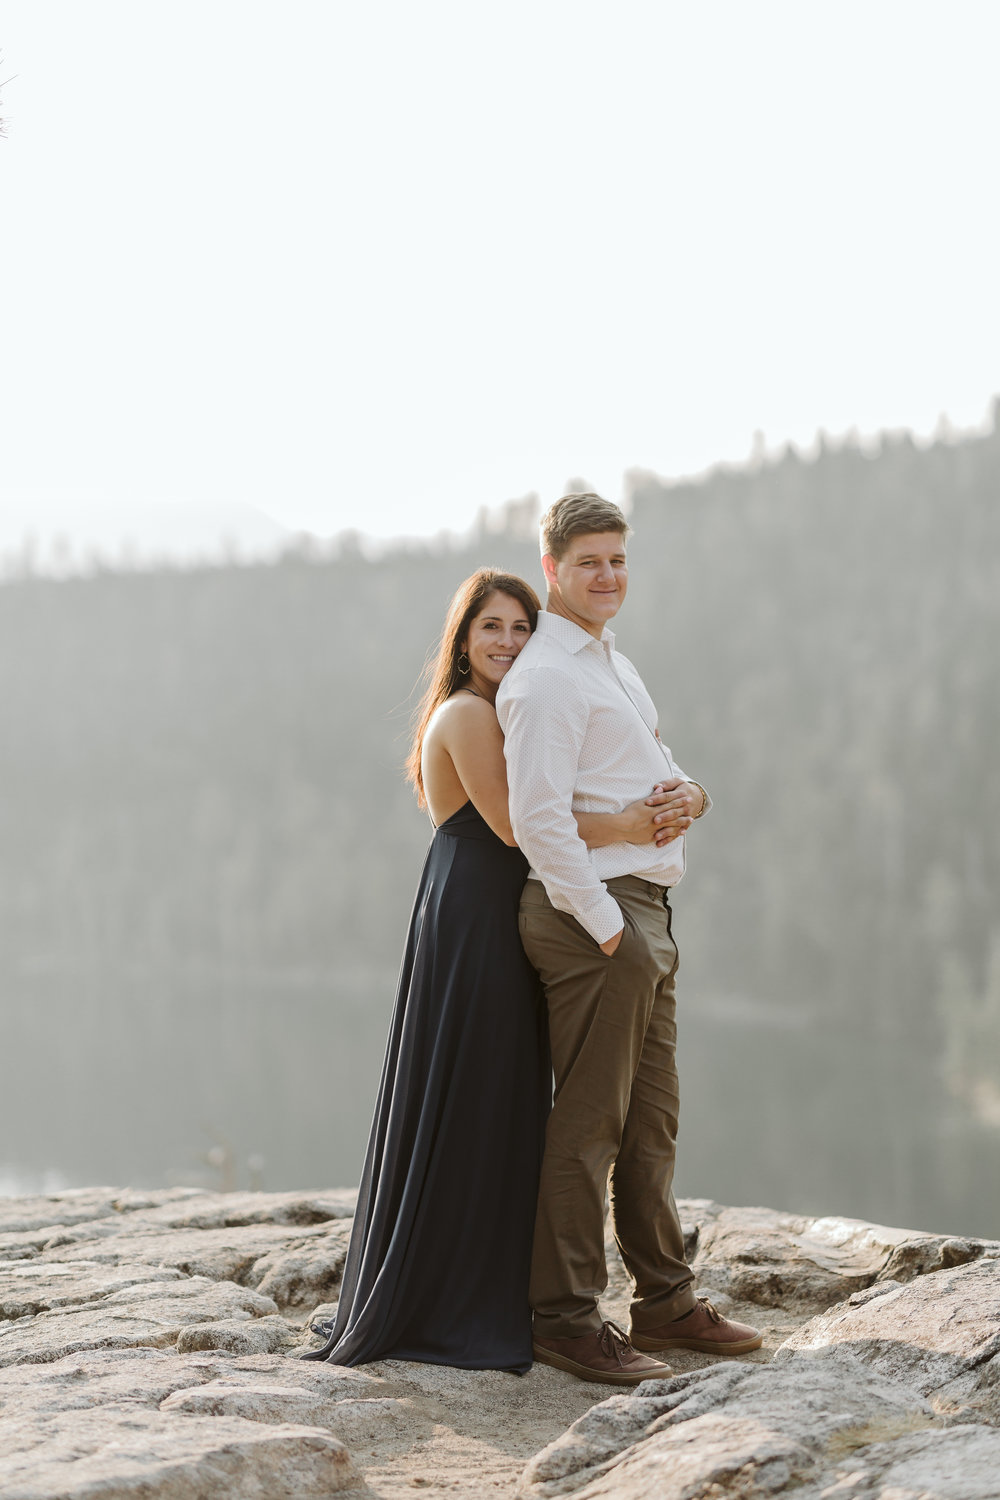 nicole-daacke-photography-lake-tahoe-sunrise-summer-adventure-engagement-photos-nevada-wedding-elopement-photographer-golden-emerald-bay-light-pine-trees-summer-vibe-fun-carefree-authentic-love-47.jpg